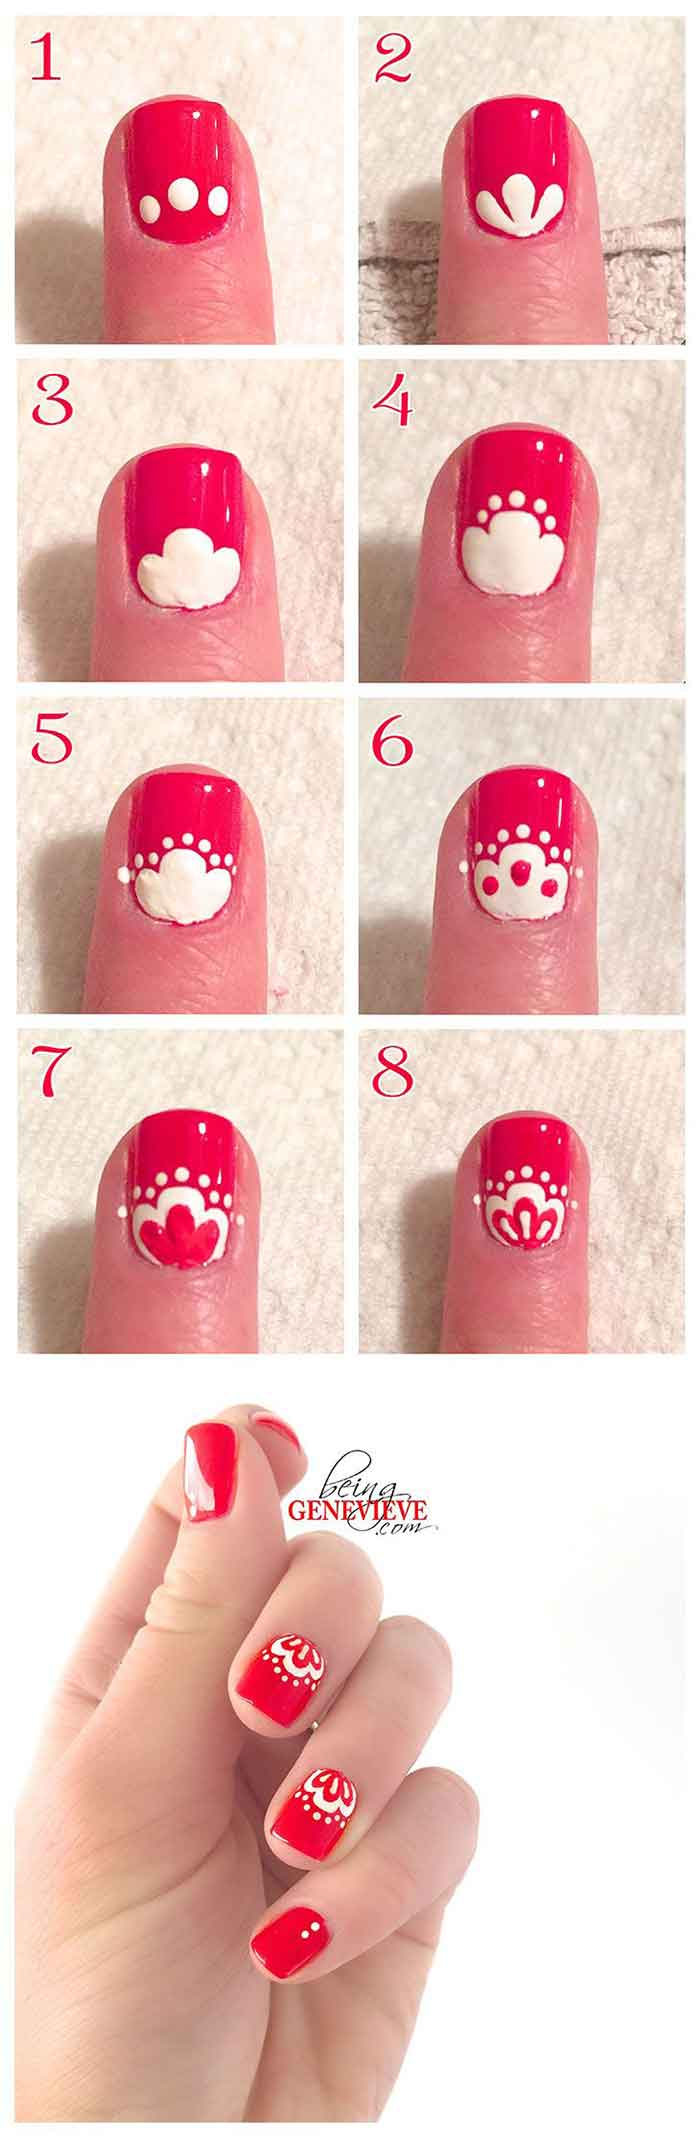 16. Oriental Red Nails